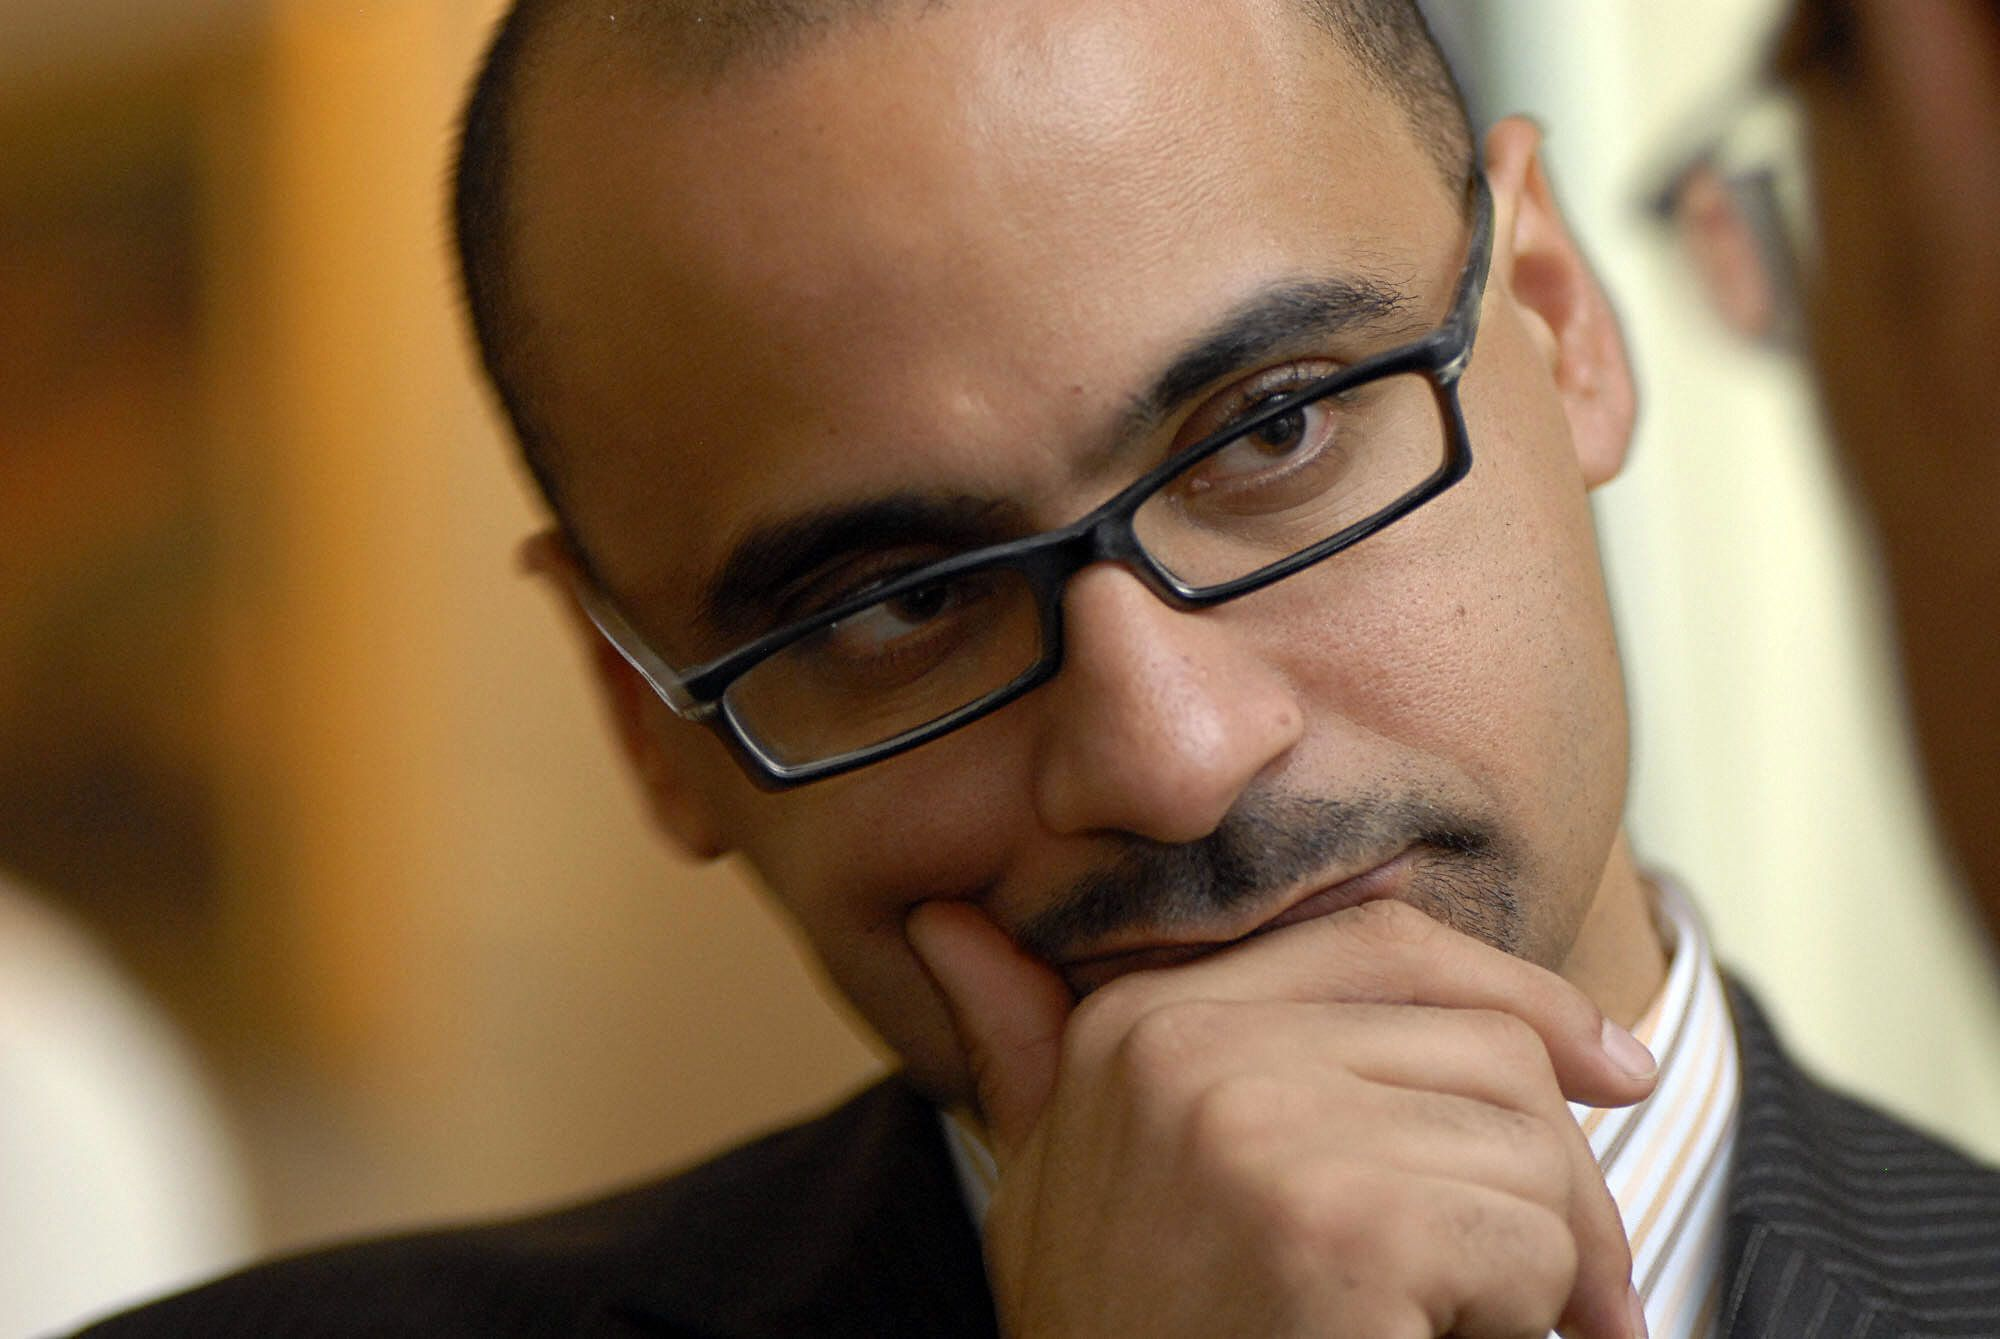 Dominican MIT professor Junot Diaz, winner of the Pulitzer Prize for his novel 'The Brief Wondrous Life of Oscar Wao' attends a ceremony in Santo Domingo, on May 1, 2008. AFP PHOTO/Ricardo HERNANDEZ (Photo credit should read RICARDO HERNANDEZ/AFP/Getty Images)